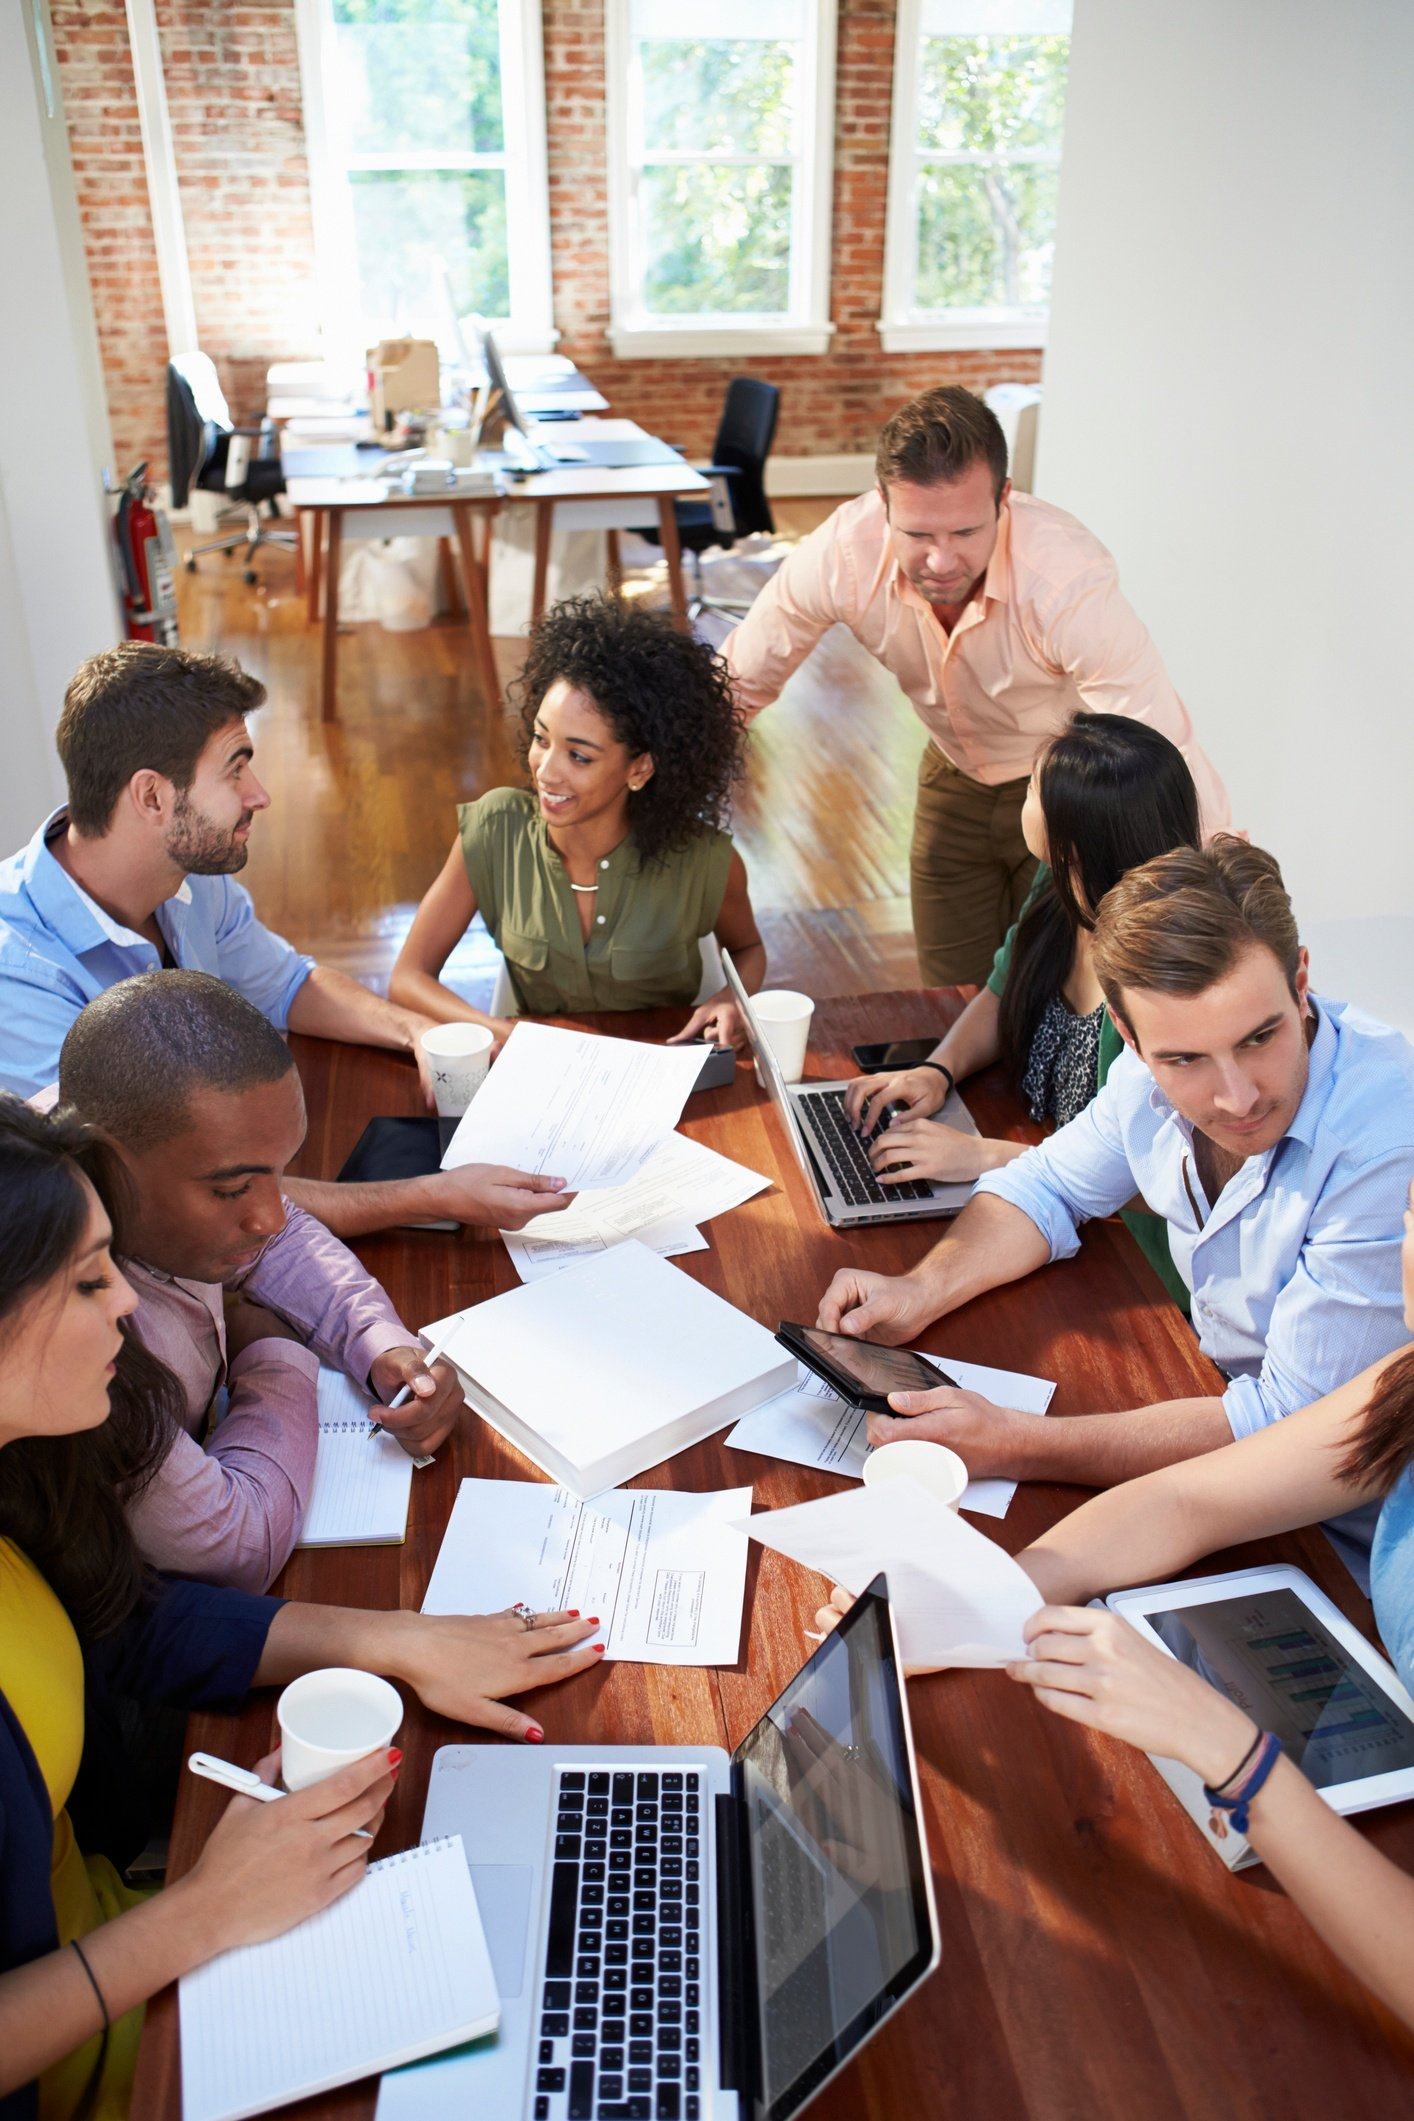 Group of office workers meeting to discuss their ideas